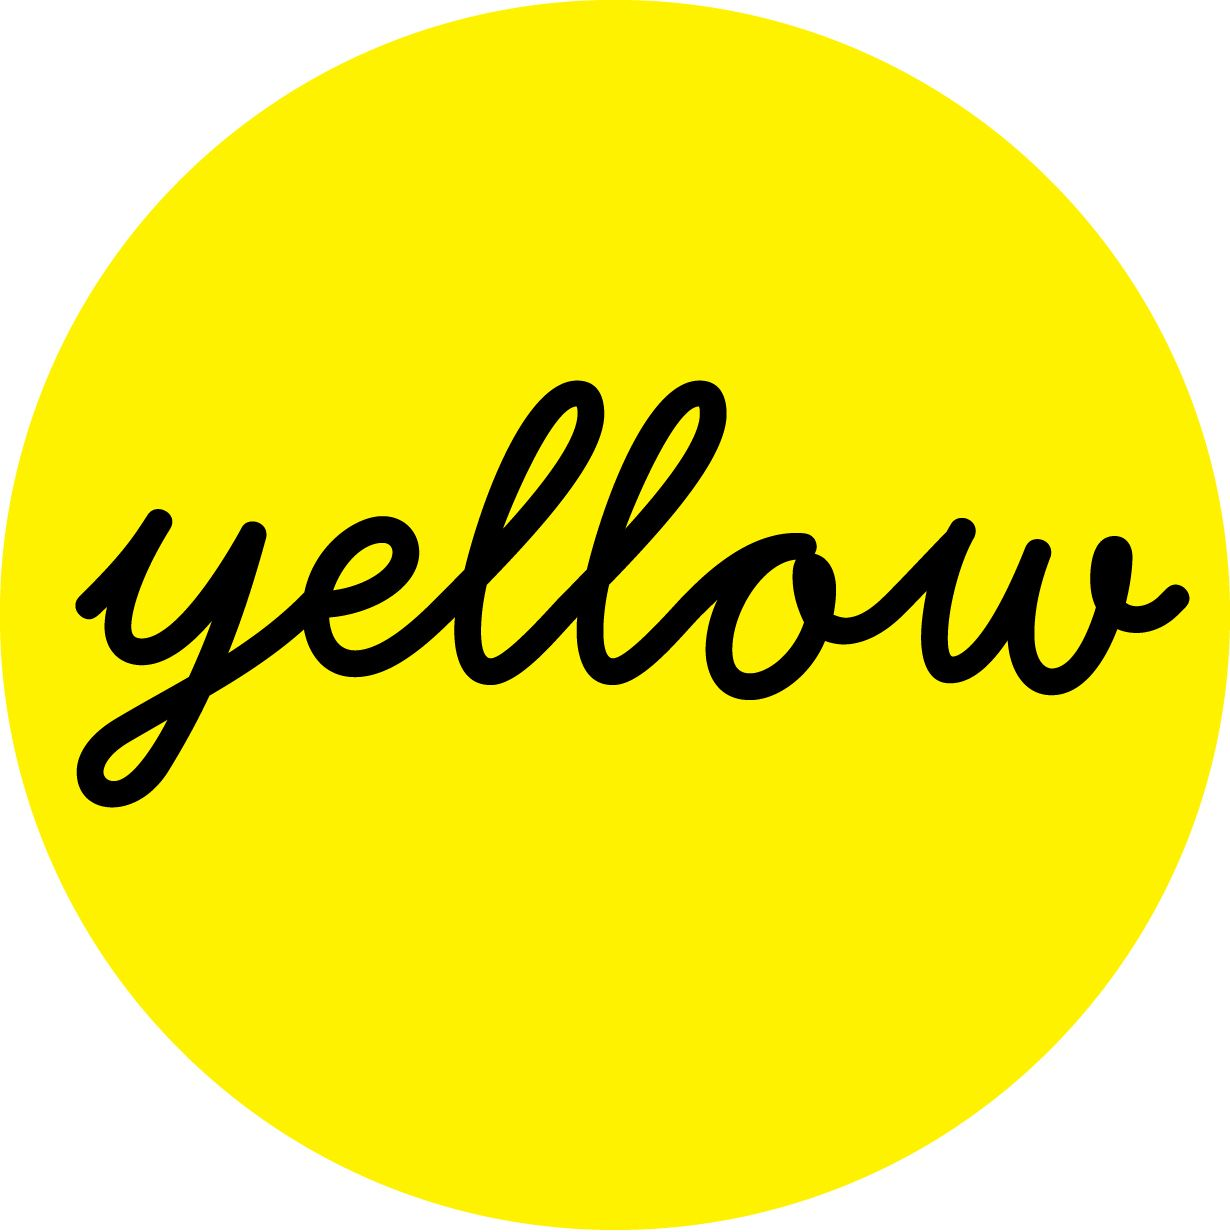 yellow shines with optimism enlightenment happiness and wholeness shades of golden yellow embody the promise of a positive future - Pictures Of The Color Yellow